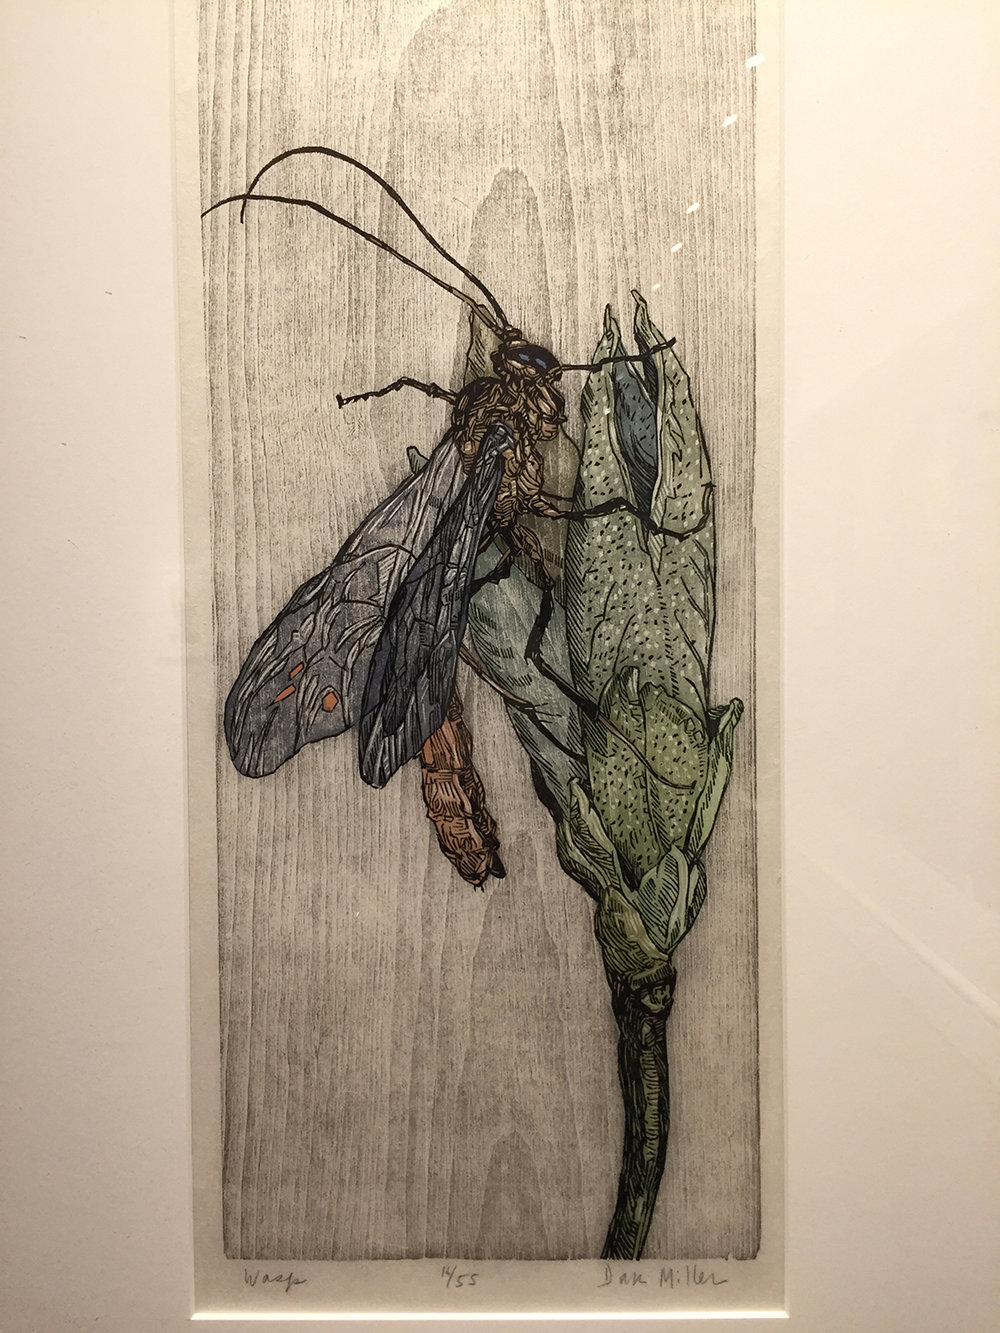 Wasp, color woodcut by Dan Miller